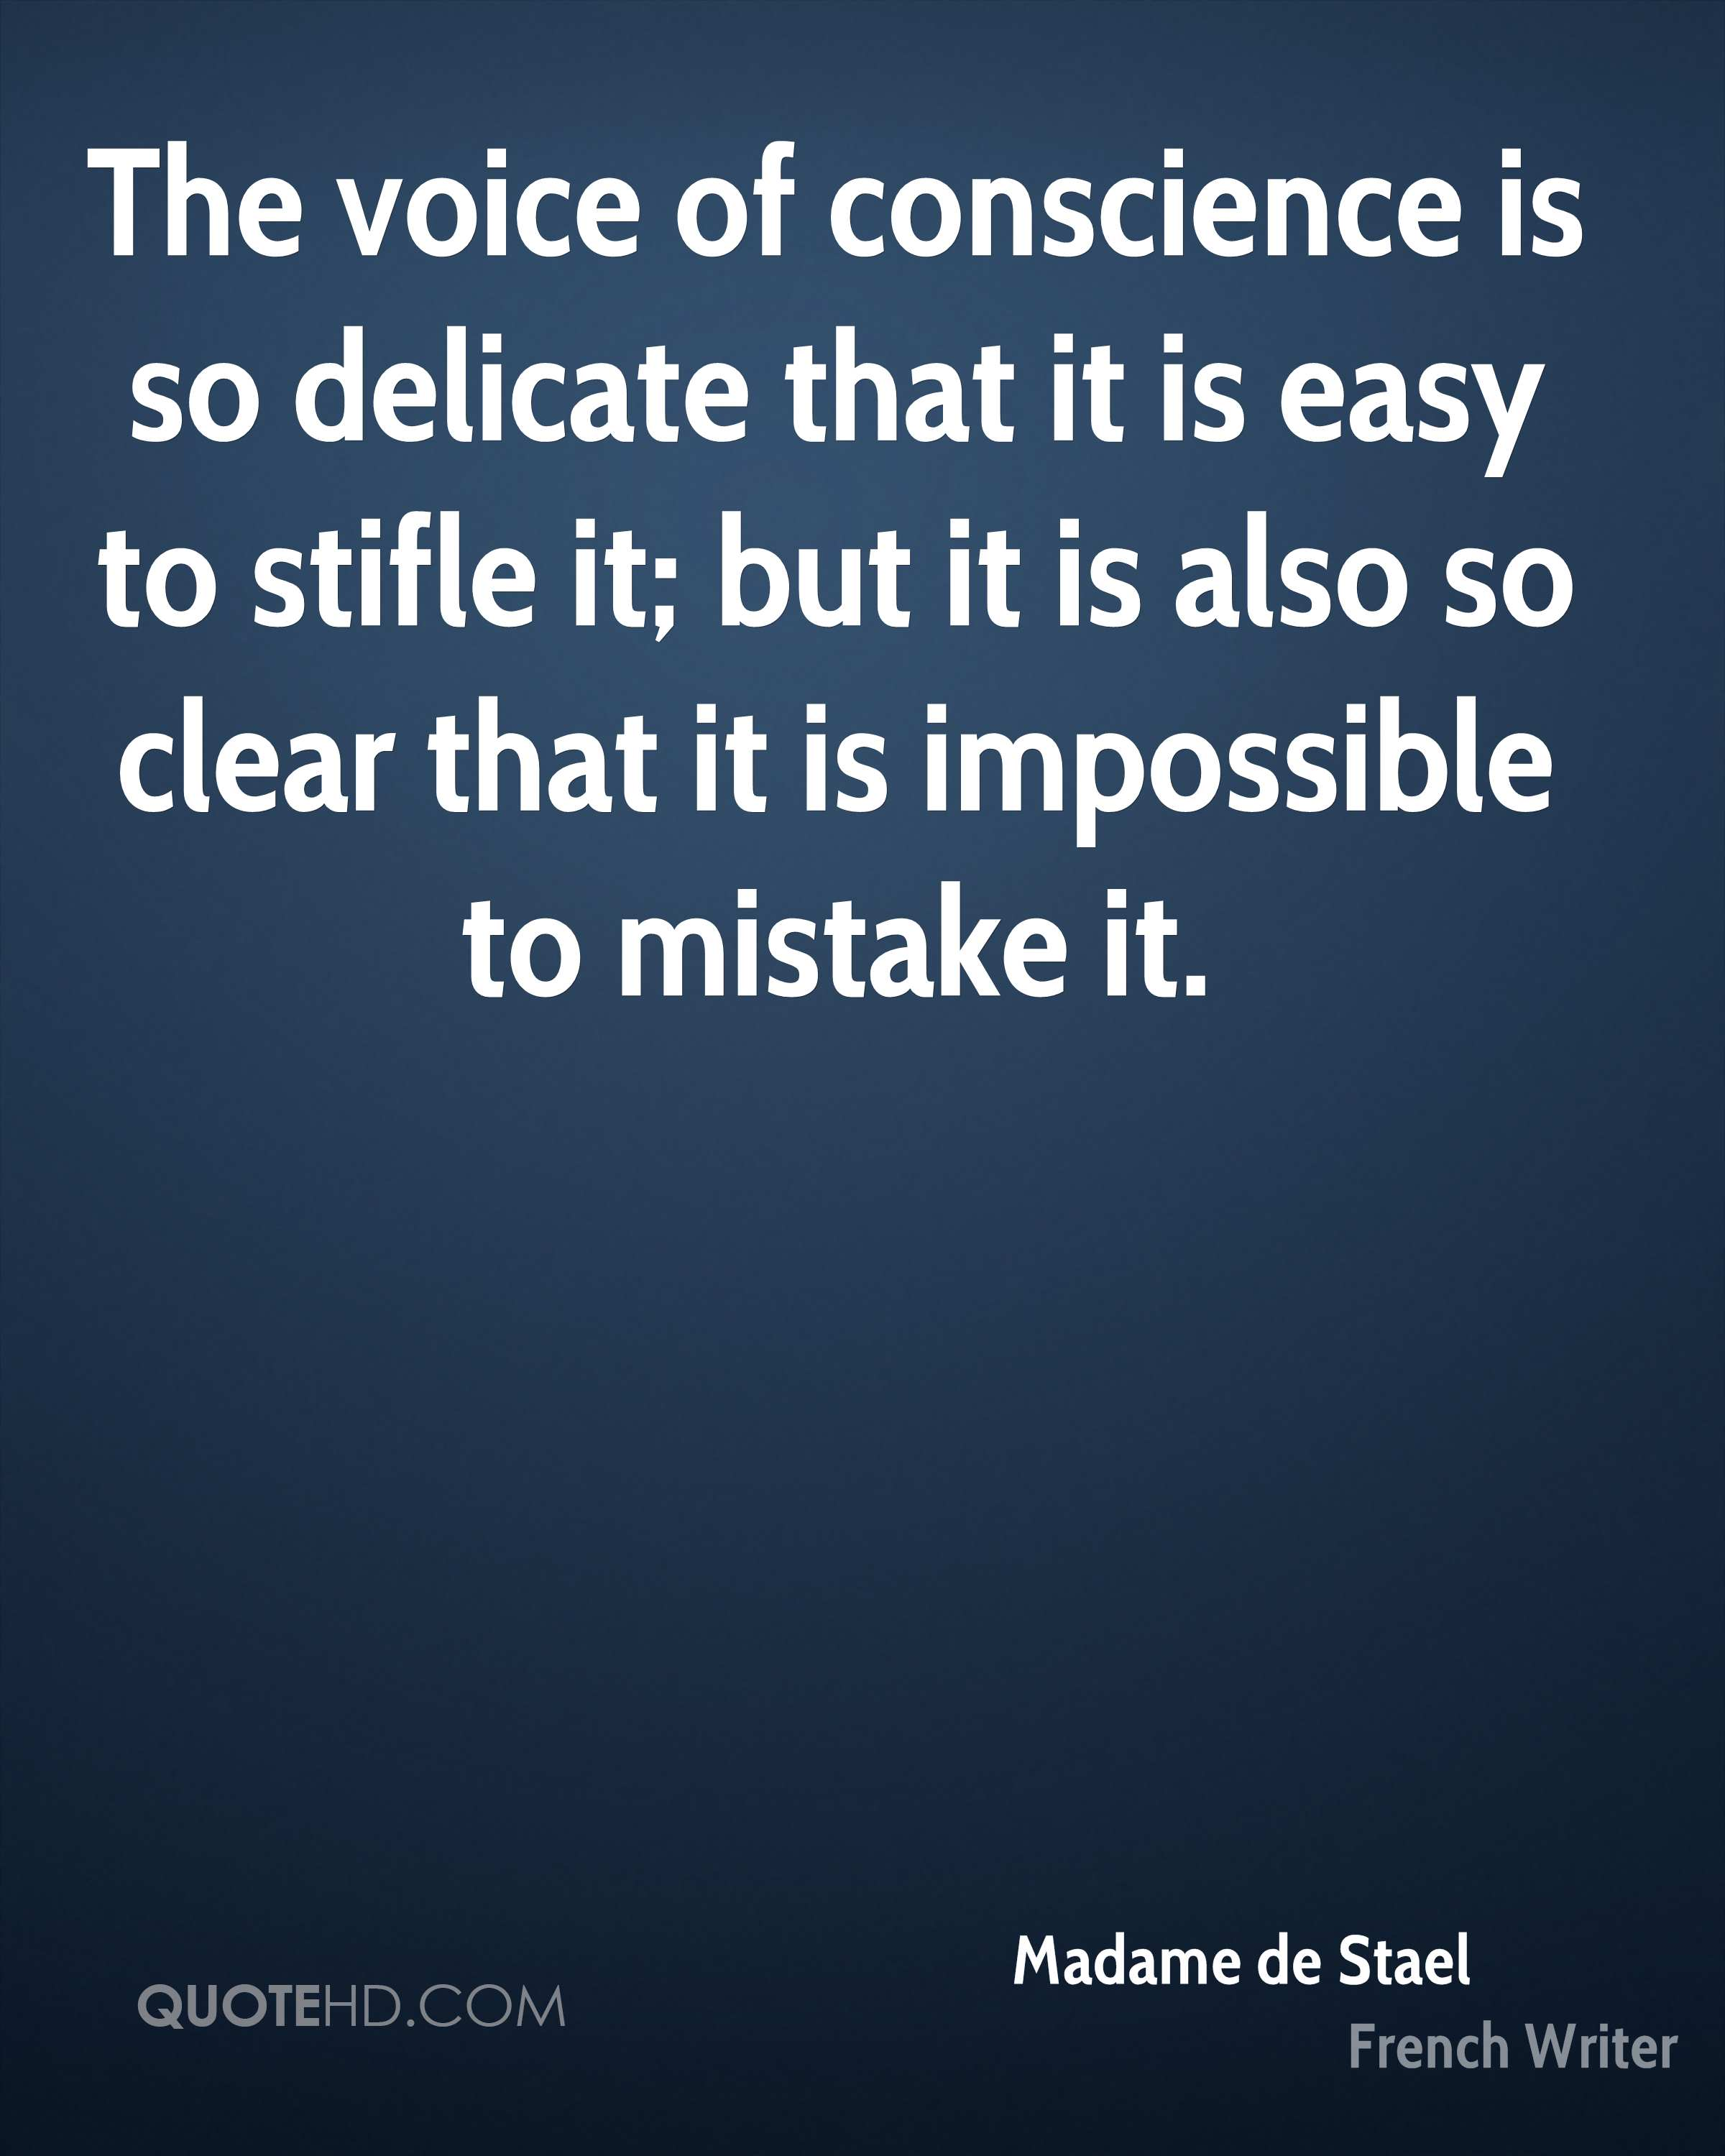 The voice of conscience is so delicate that it is easy to stifle it; but it is also so clear that it is impossible to mistake it.